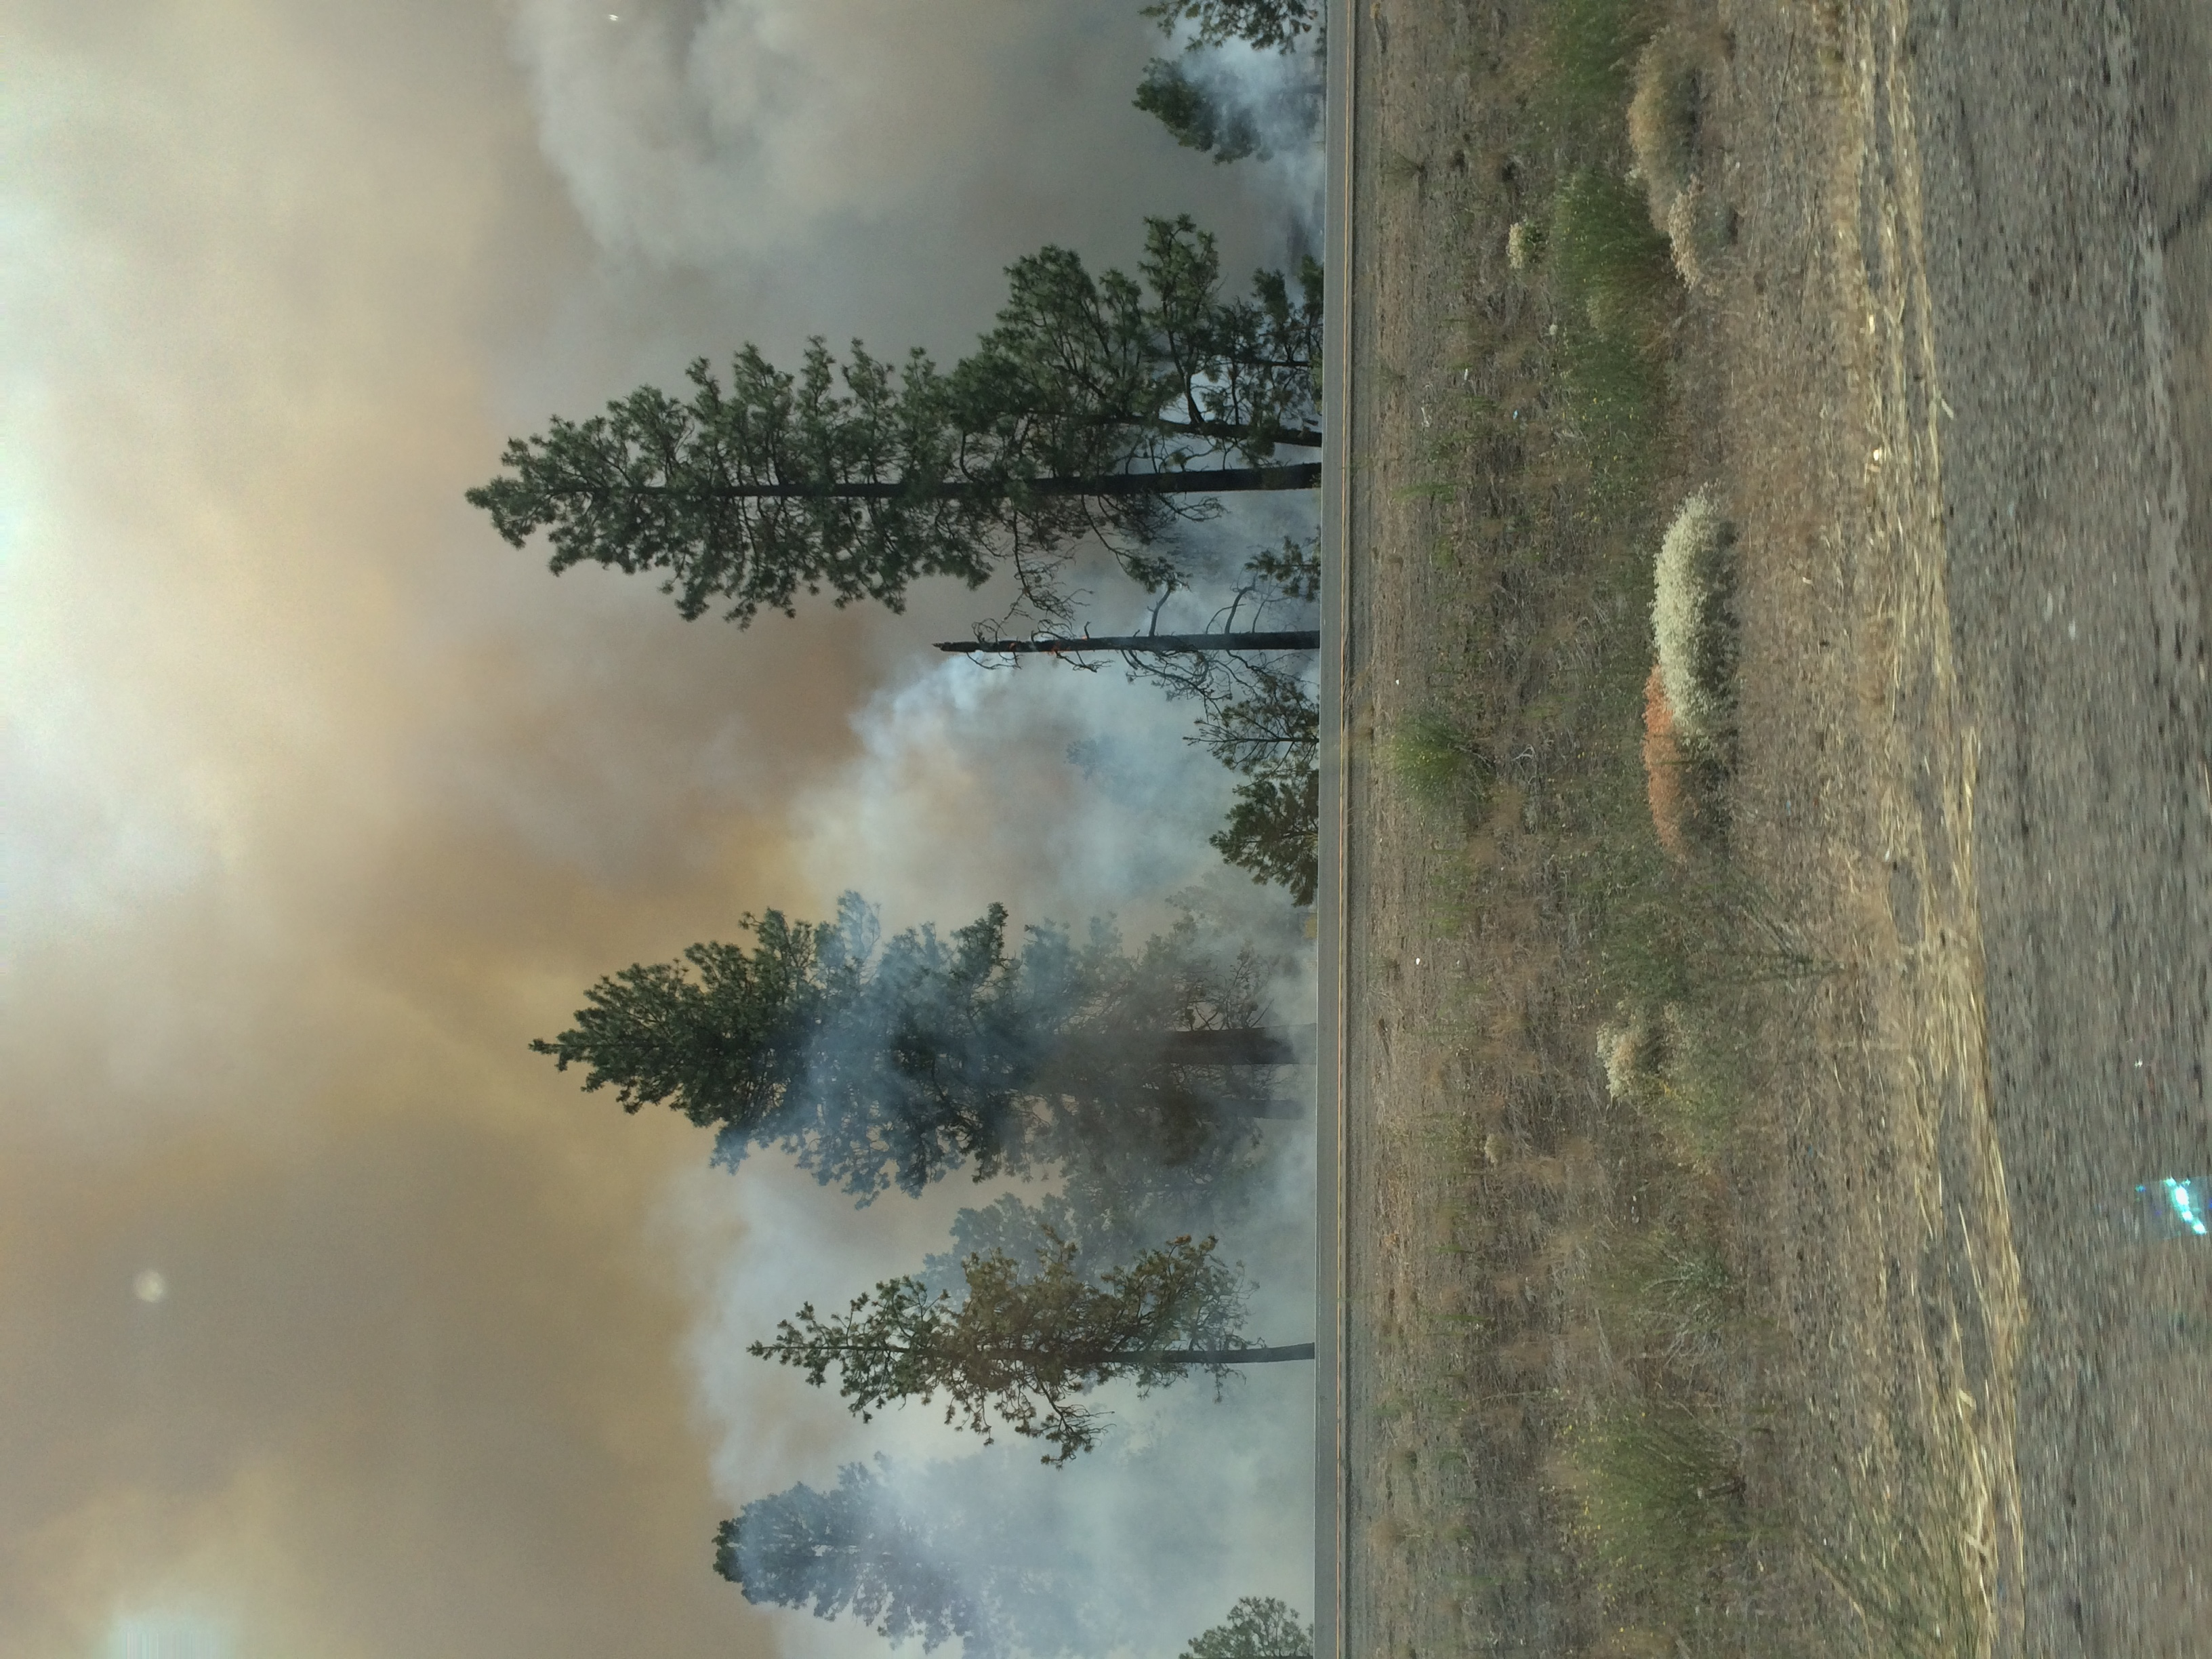 Photo of trees covered in smoke caused by a fire. Photo courtesy of the author.